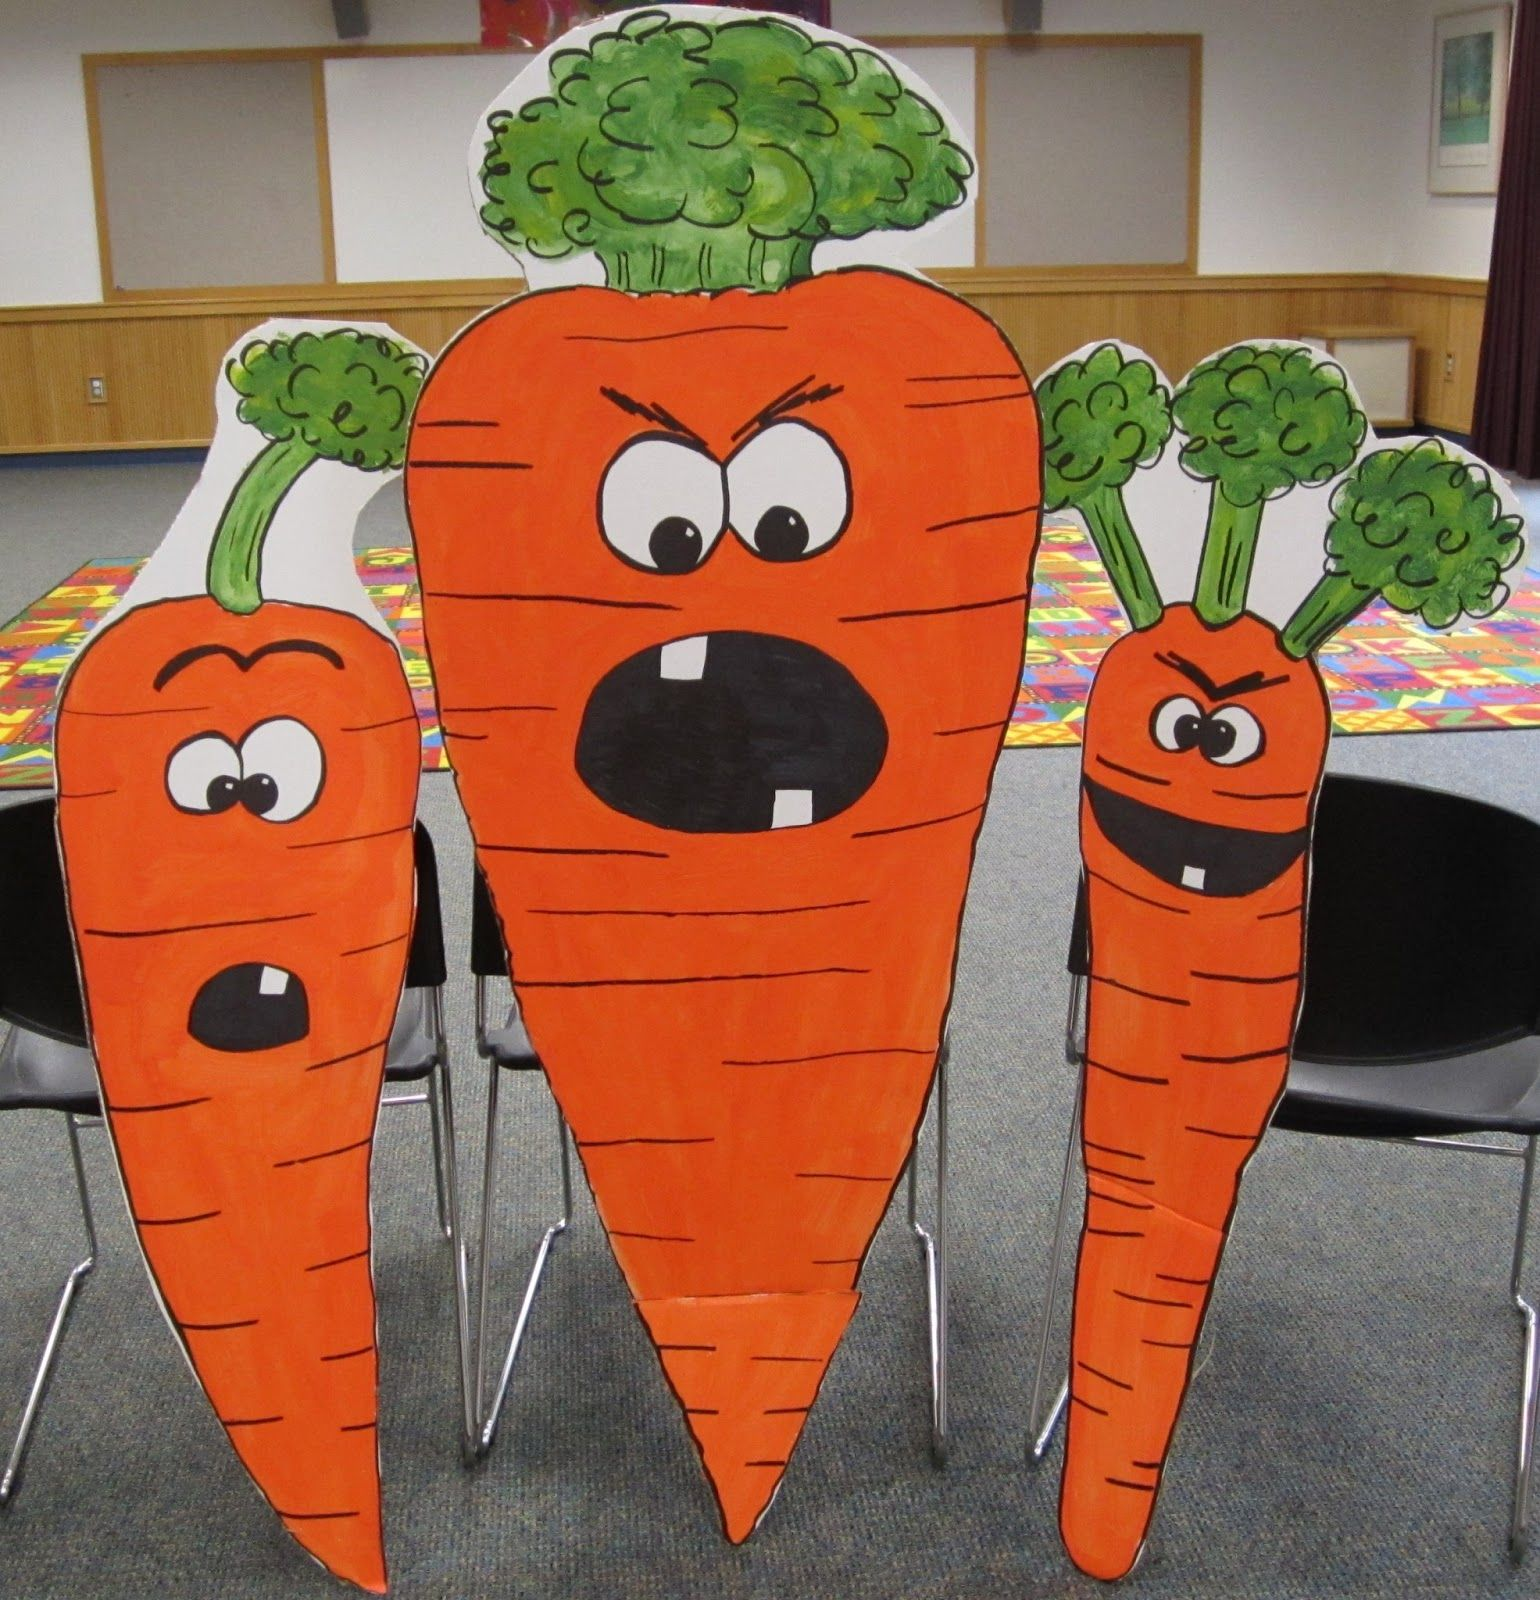 Beyond The Book Storytimes Creepy Cardboard Carrots